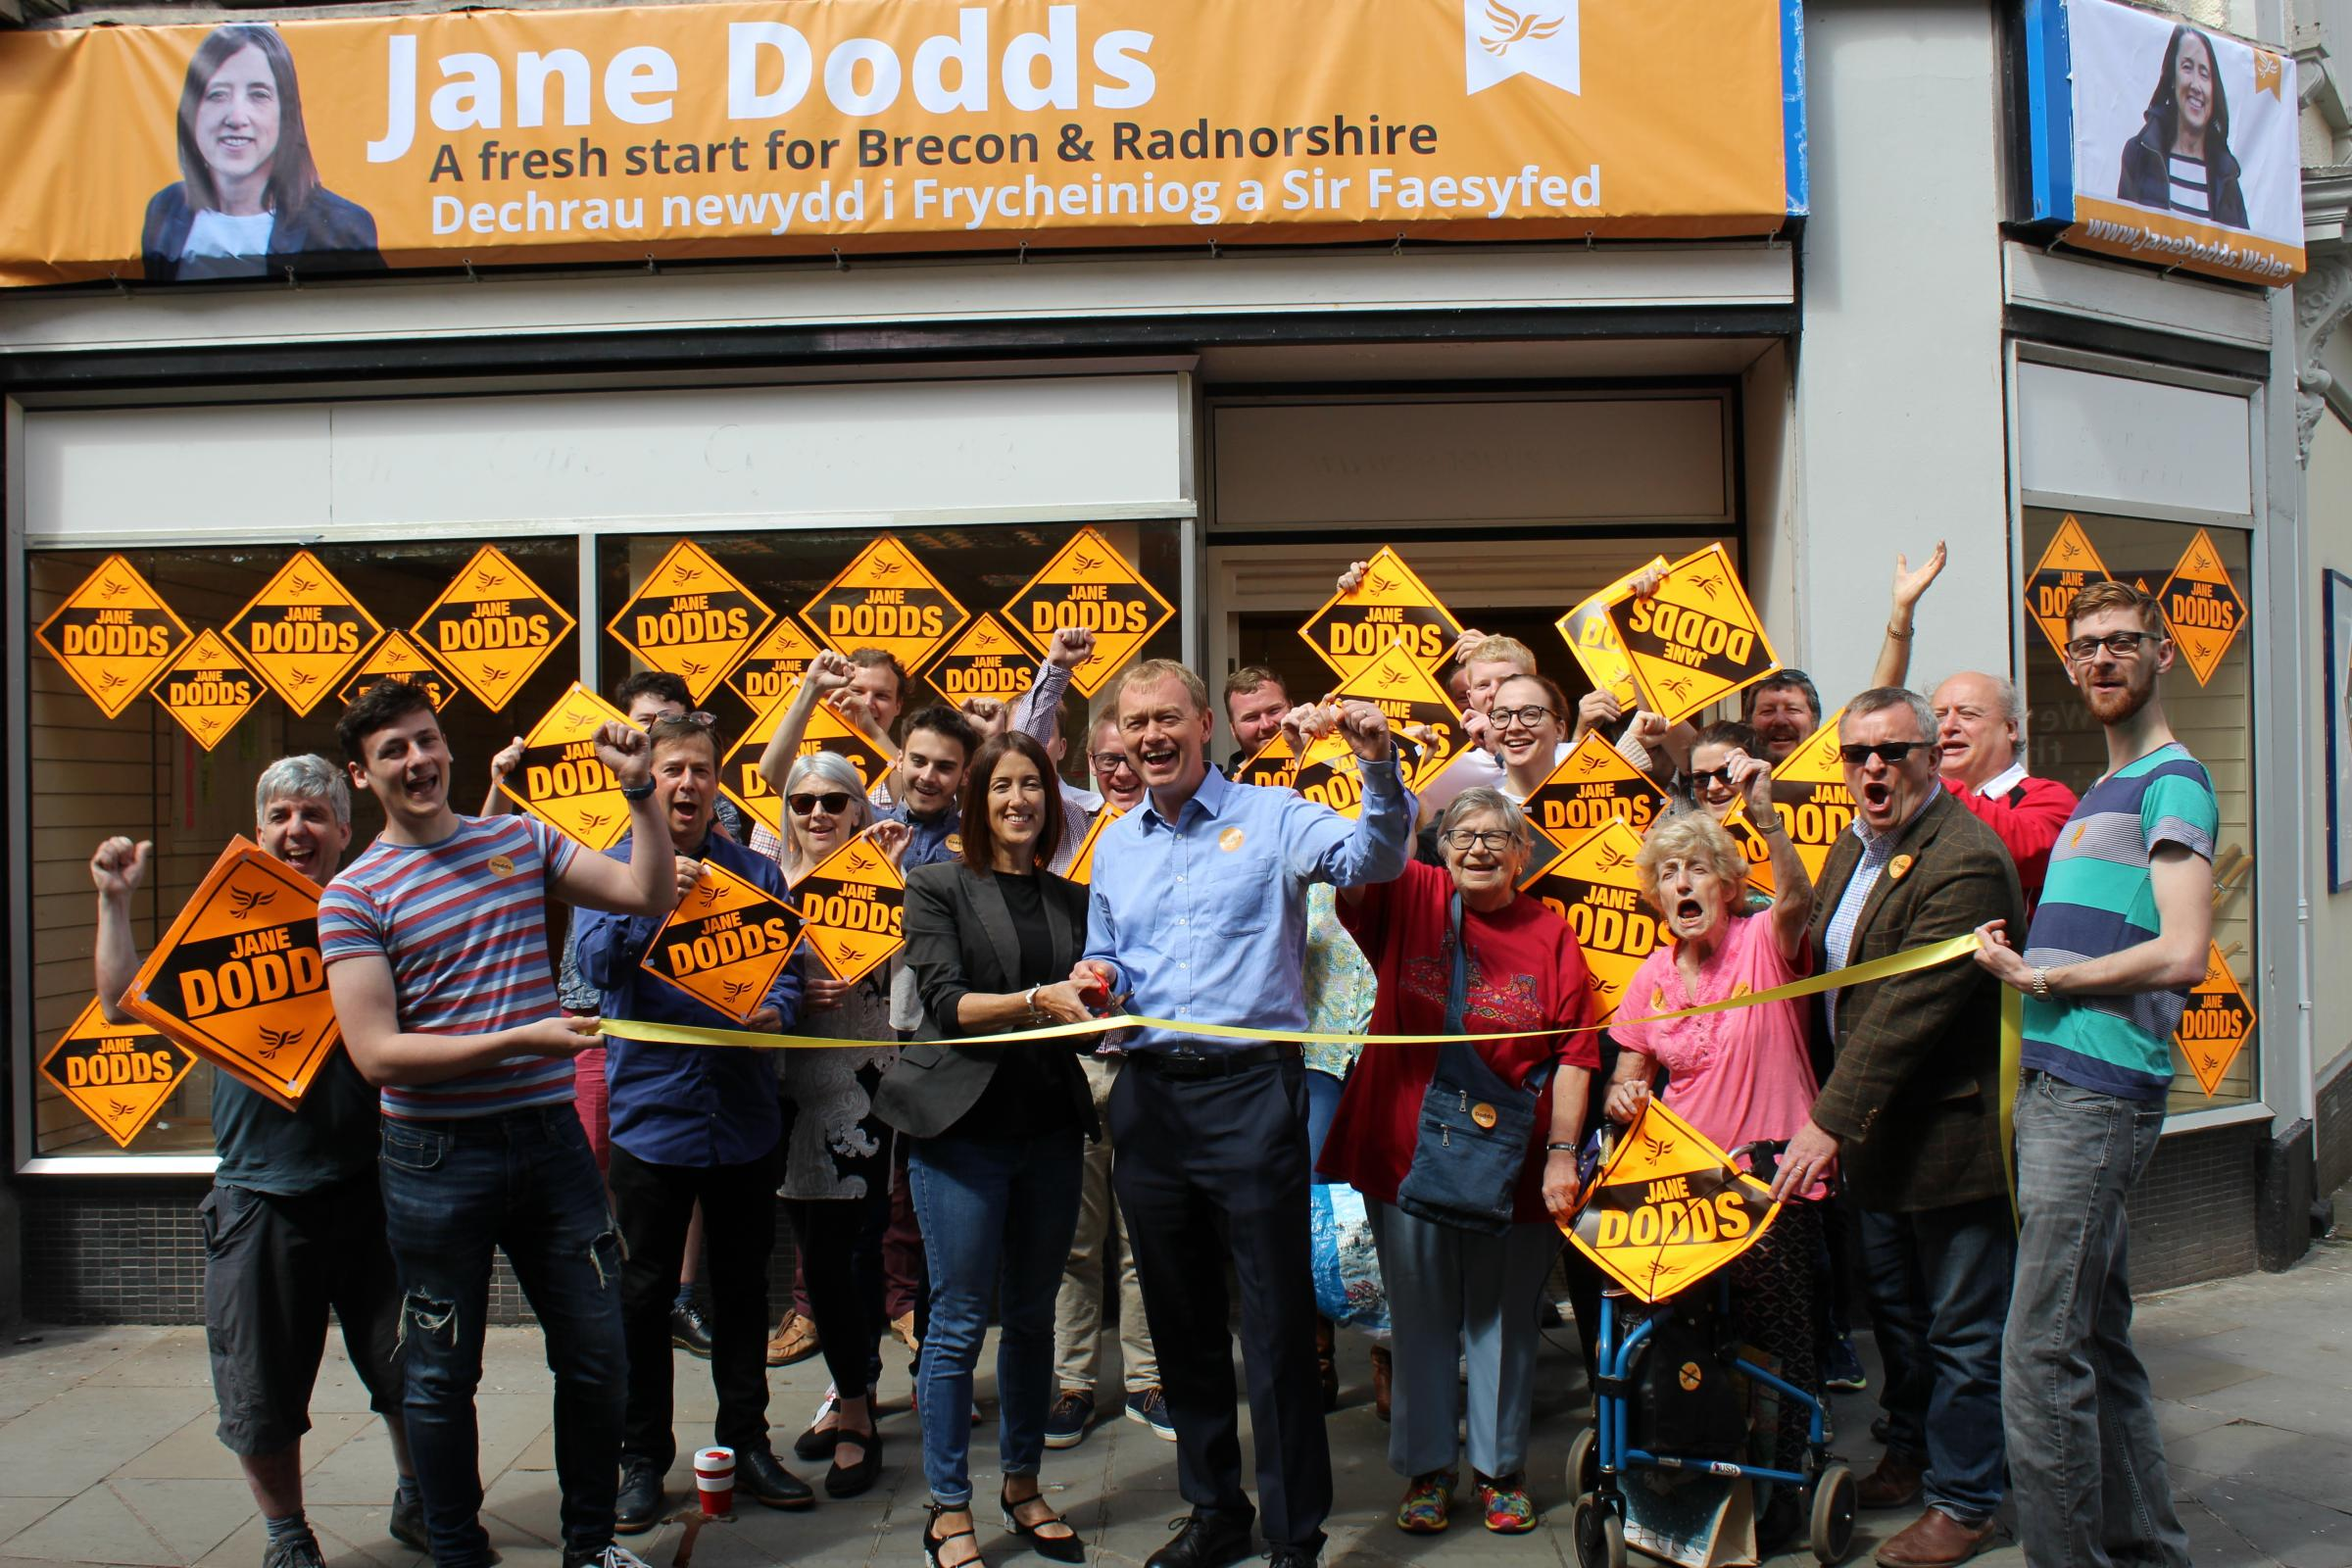 Lib Dems and Plaid Cymru team up for Brecon and Radnorshire by-election